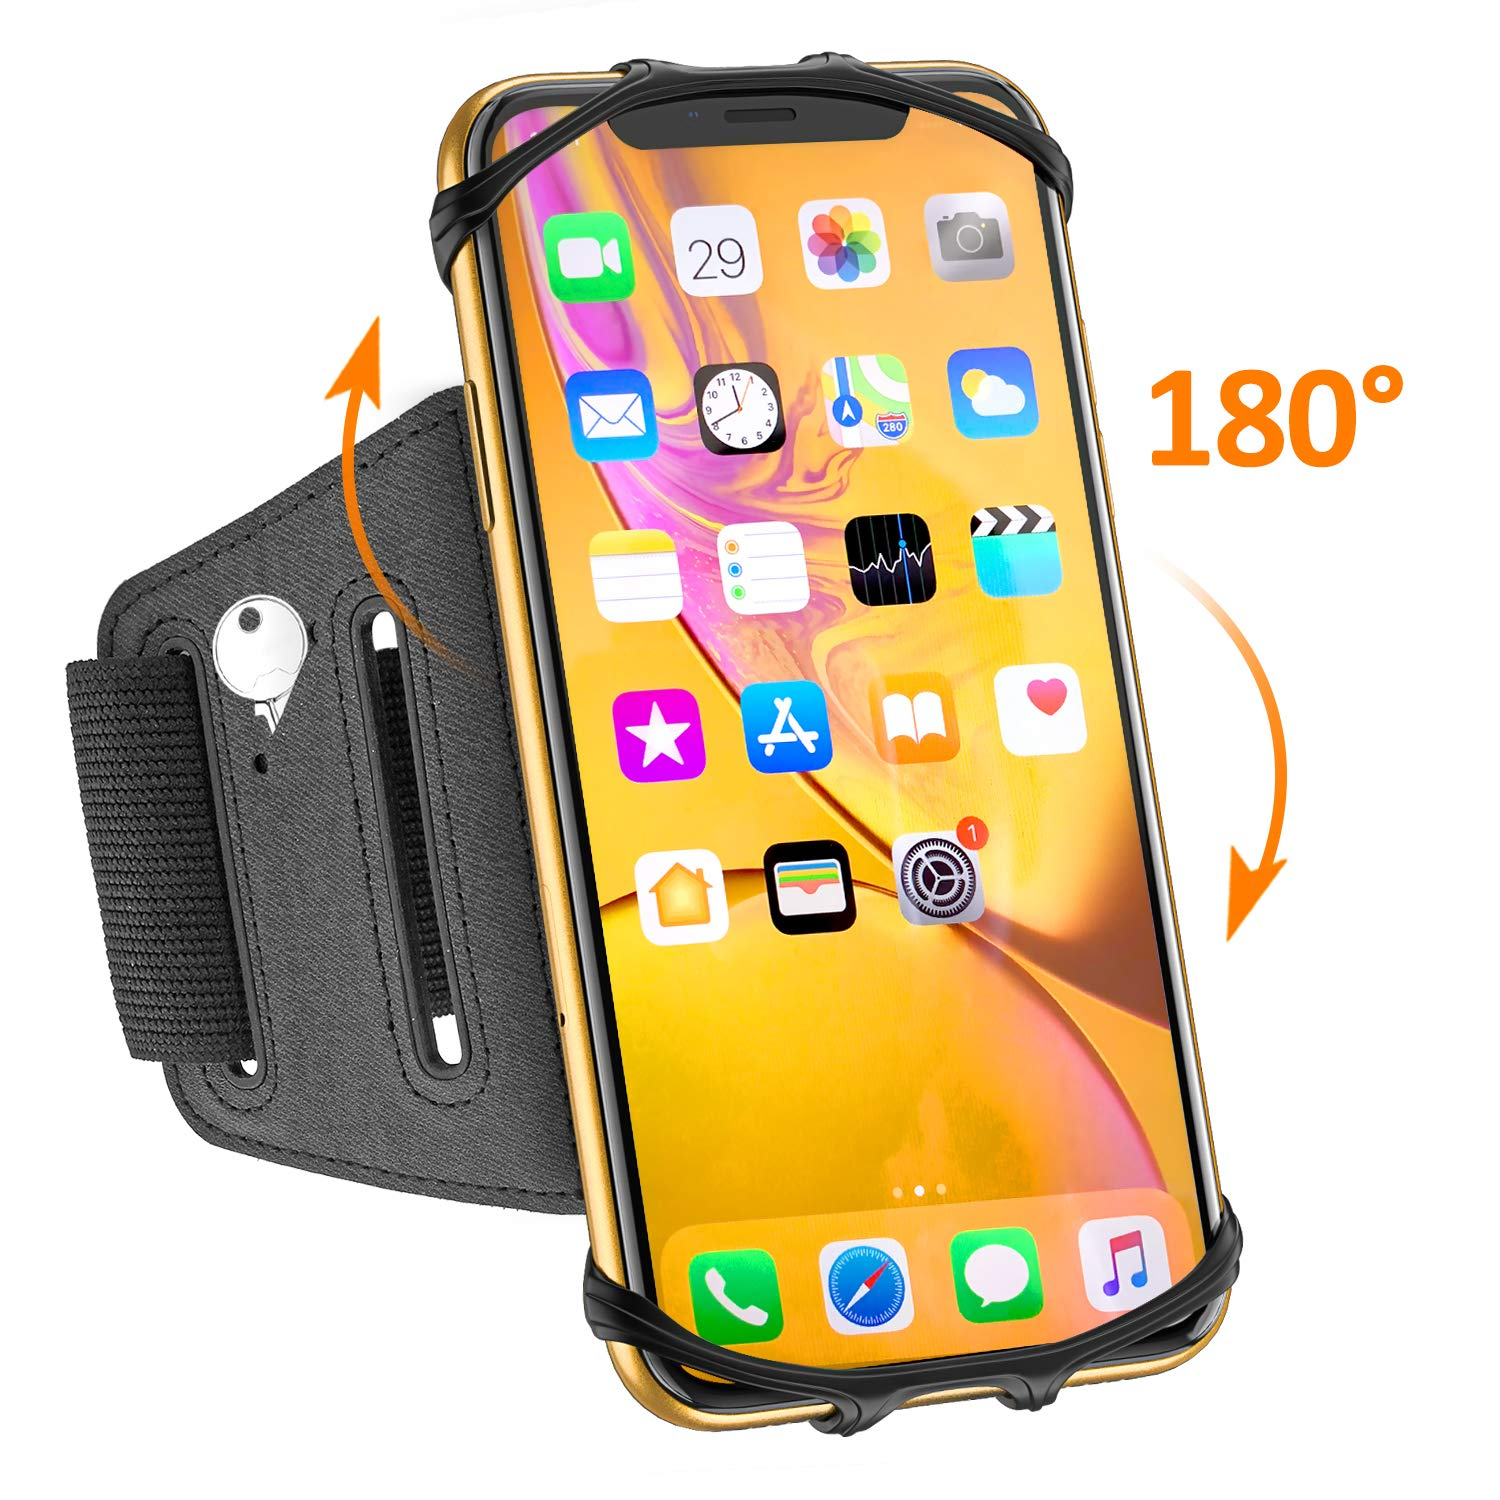 Matone Phone Armband, 180° Rotatable Phone Holder for Running, Compatible with iPhone XR/XS Max/X/8 Plus/7, Samsung Galaxy S10 Plus/S10/S10e/S9, Universal Highly Adjustable Running Arm Band by Matone